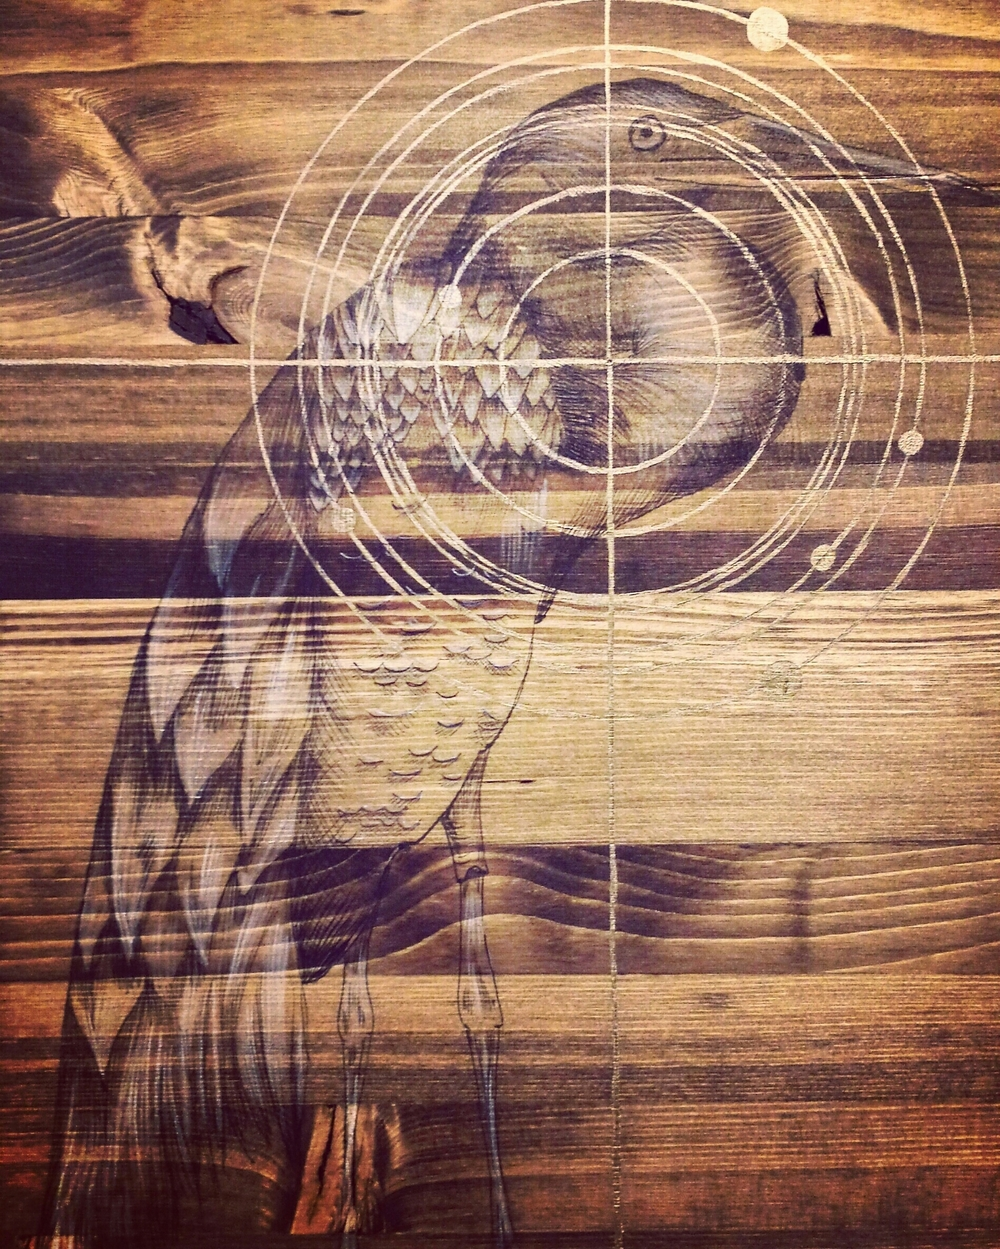 Ball point pen on wood with bronze acrylic paint and honey wood stain.